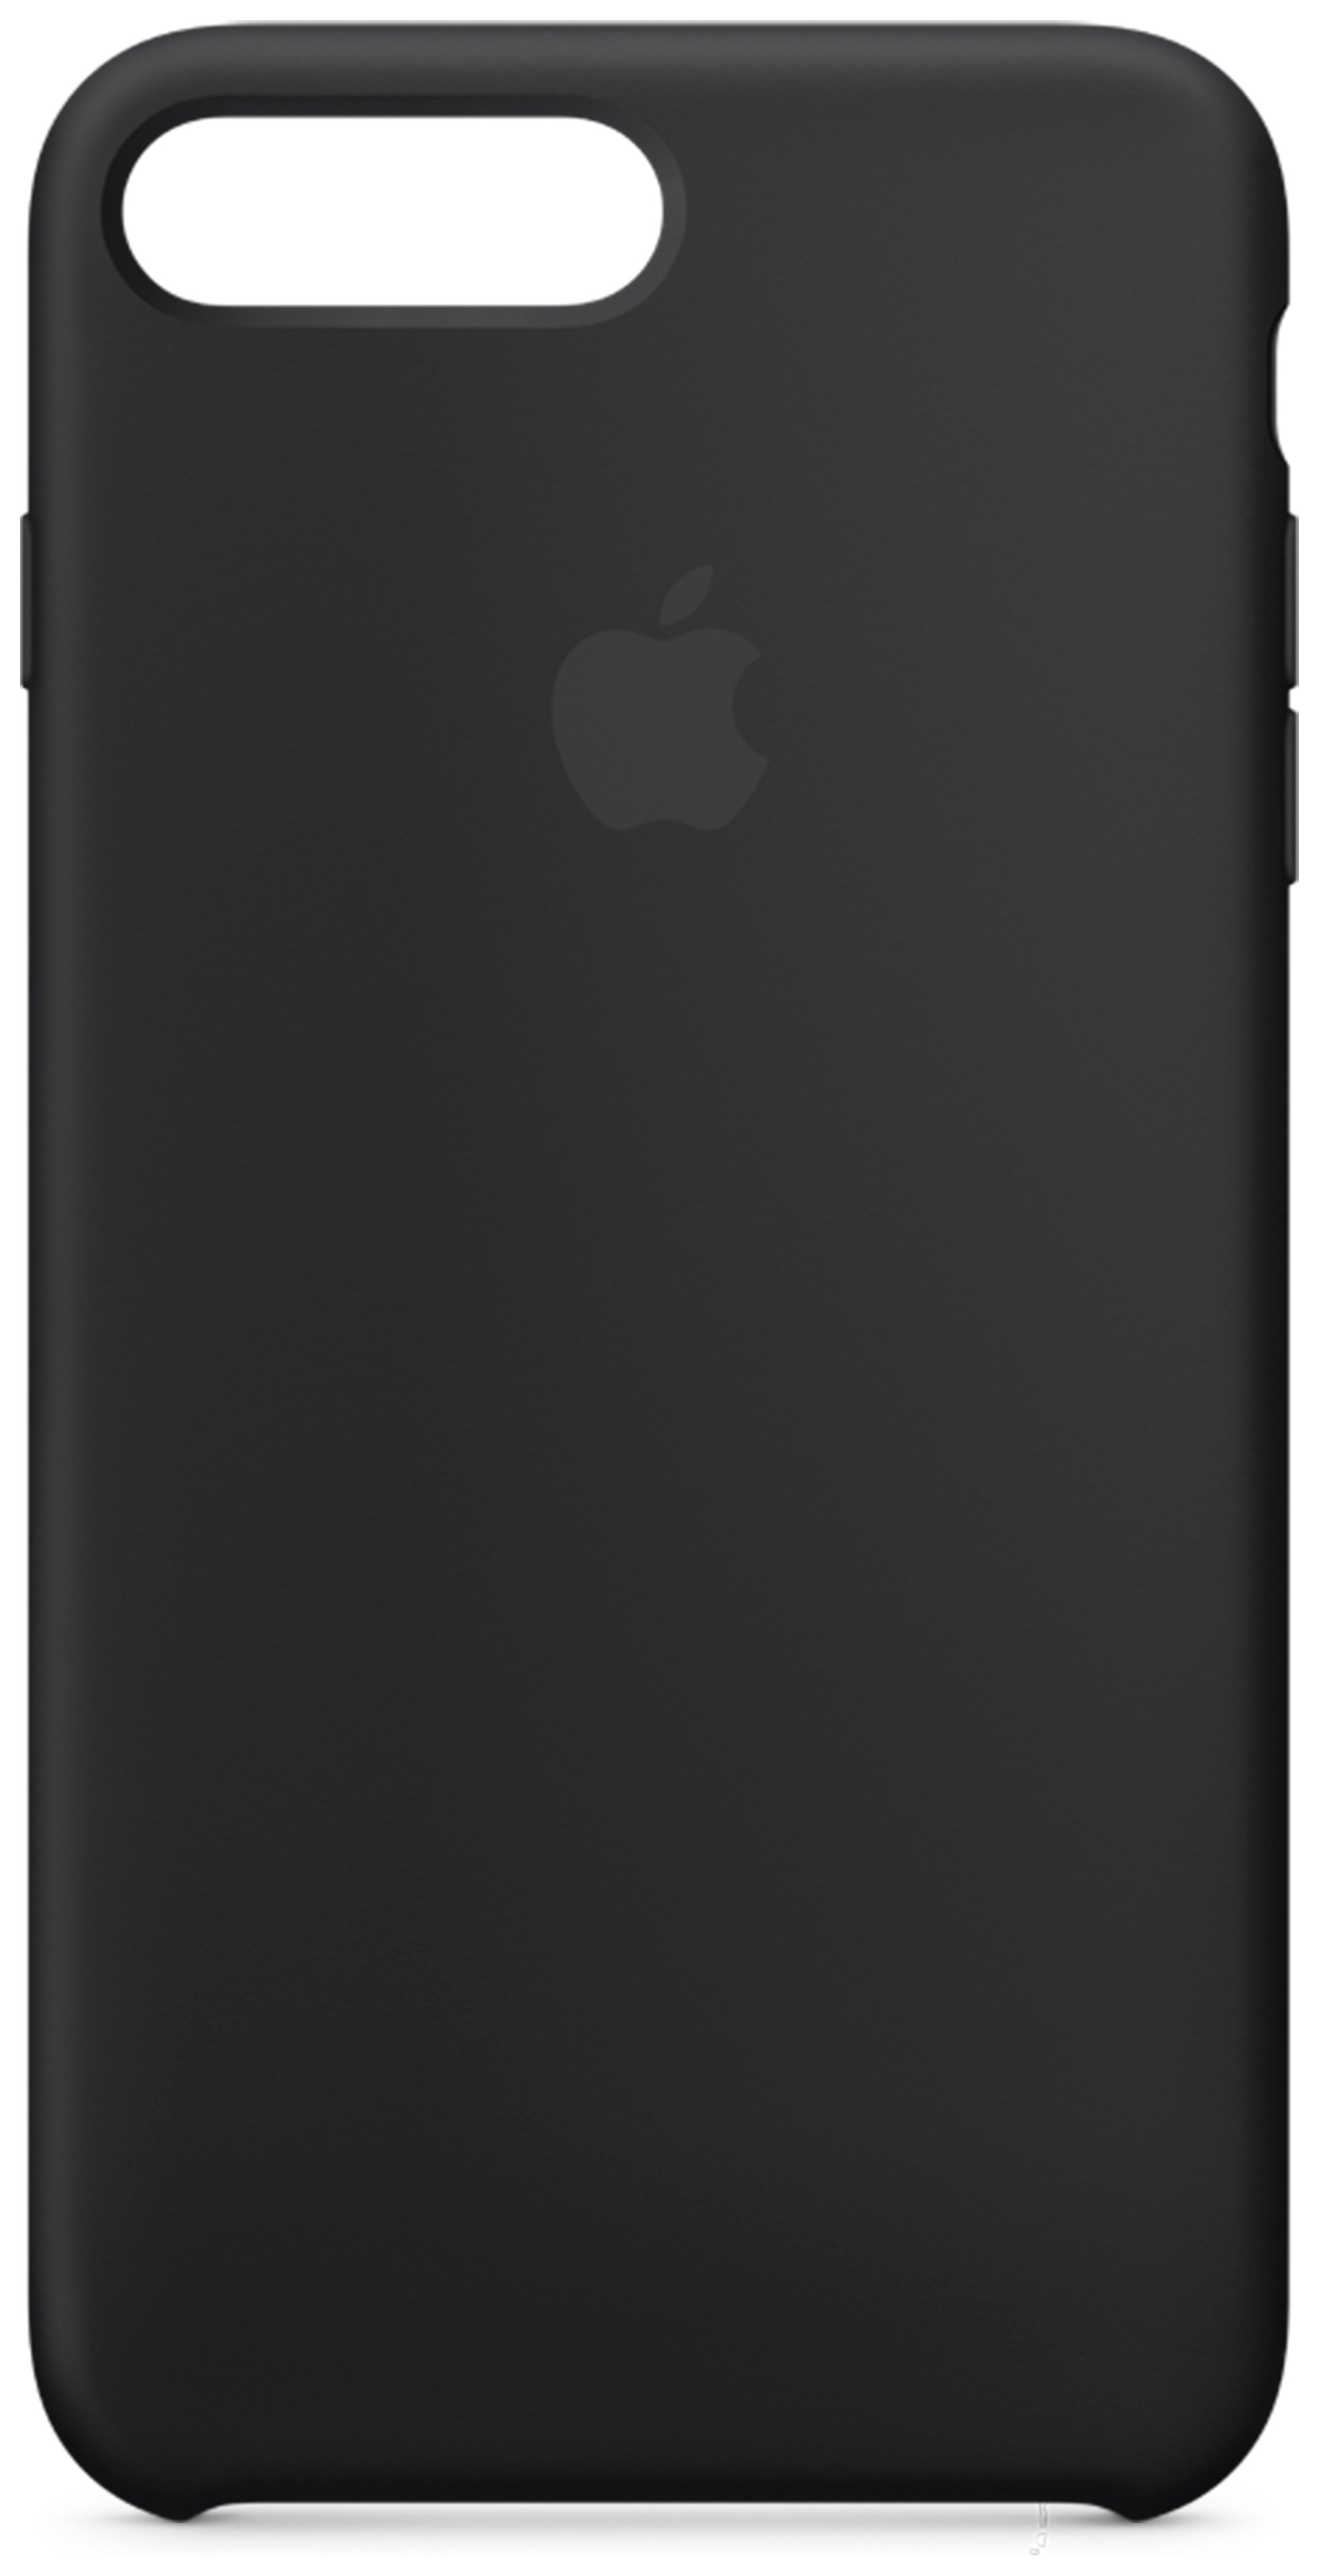 Apple iPhone SE Leather Case Black cheapest retail price